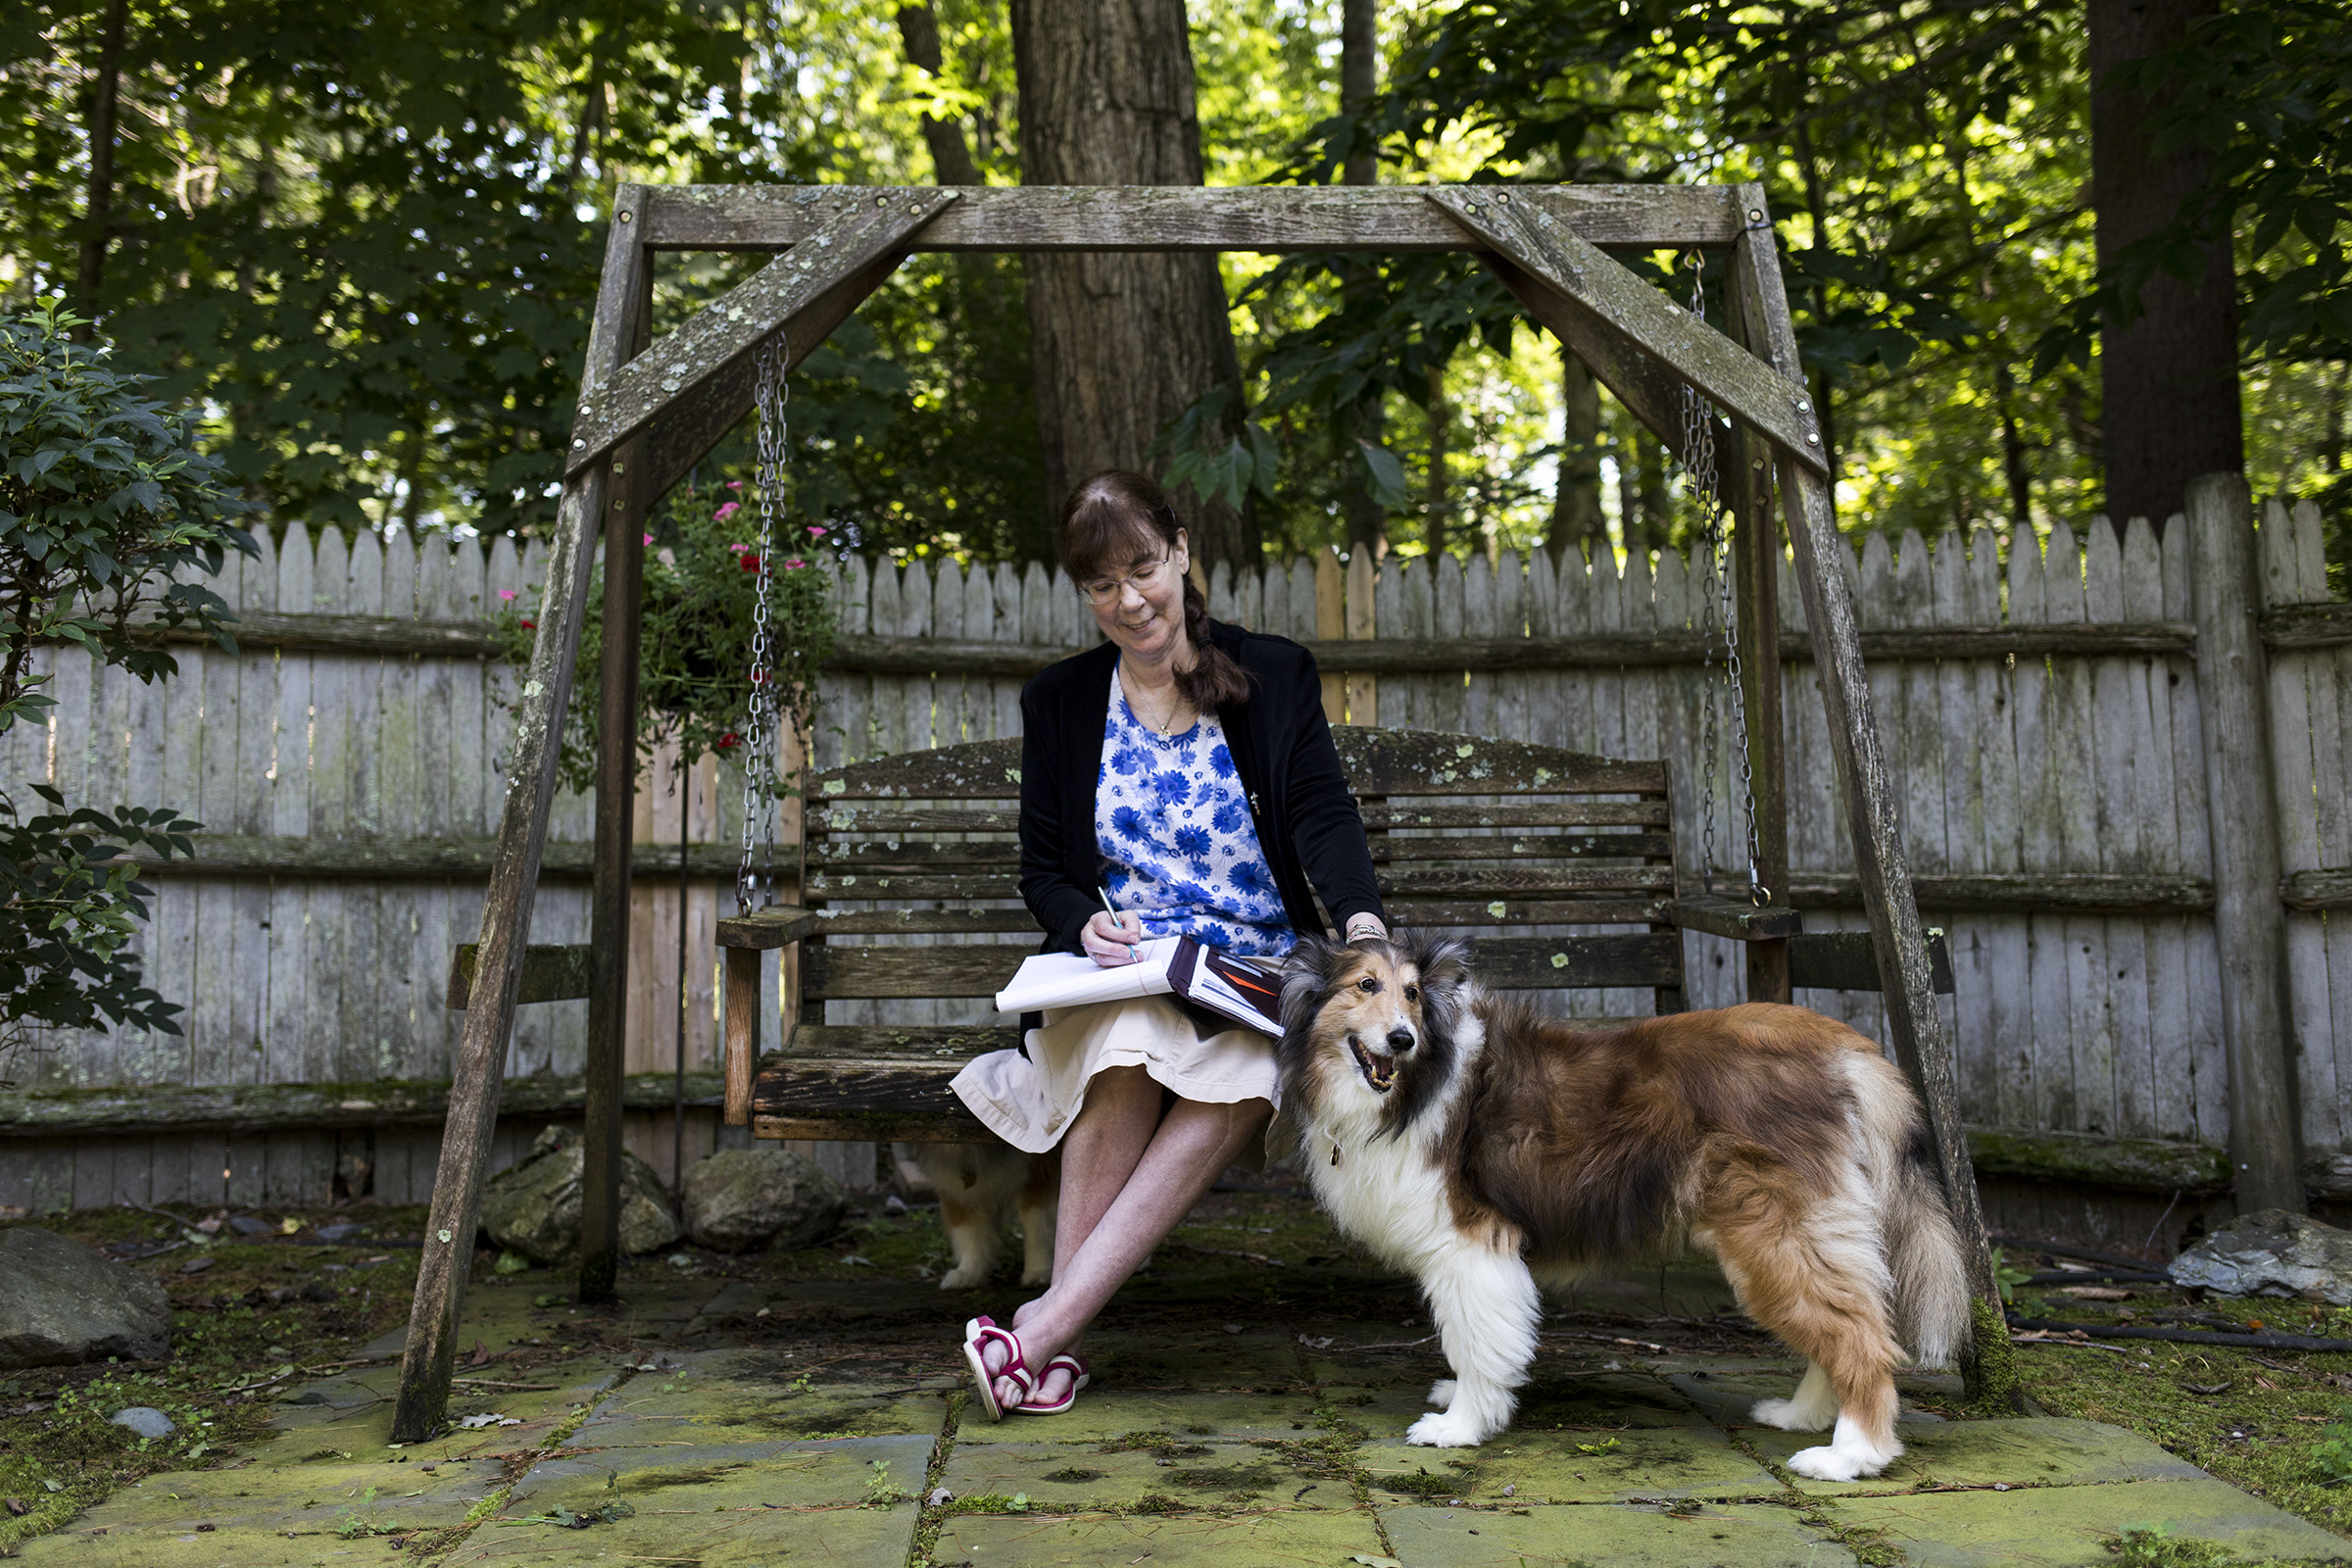 Attorney Susanne Gilliam, of Sudbury, looks over legal documents with her Sheltie dogs Corwin and Merlin outside of her home on Aug. 05, 2018. Gilliam recently volunteered with the Immigration Justice Campaign to act as a lawyer for detained immigrants in El Paso.